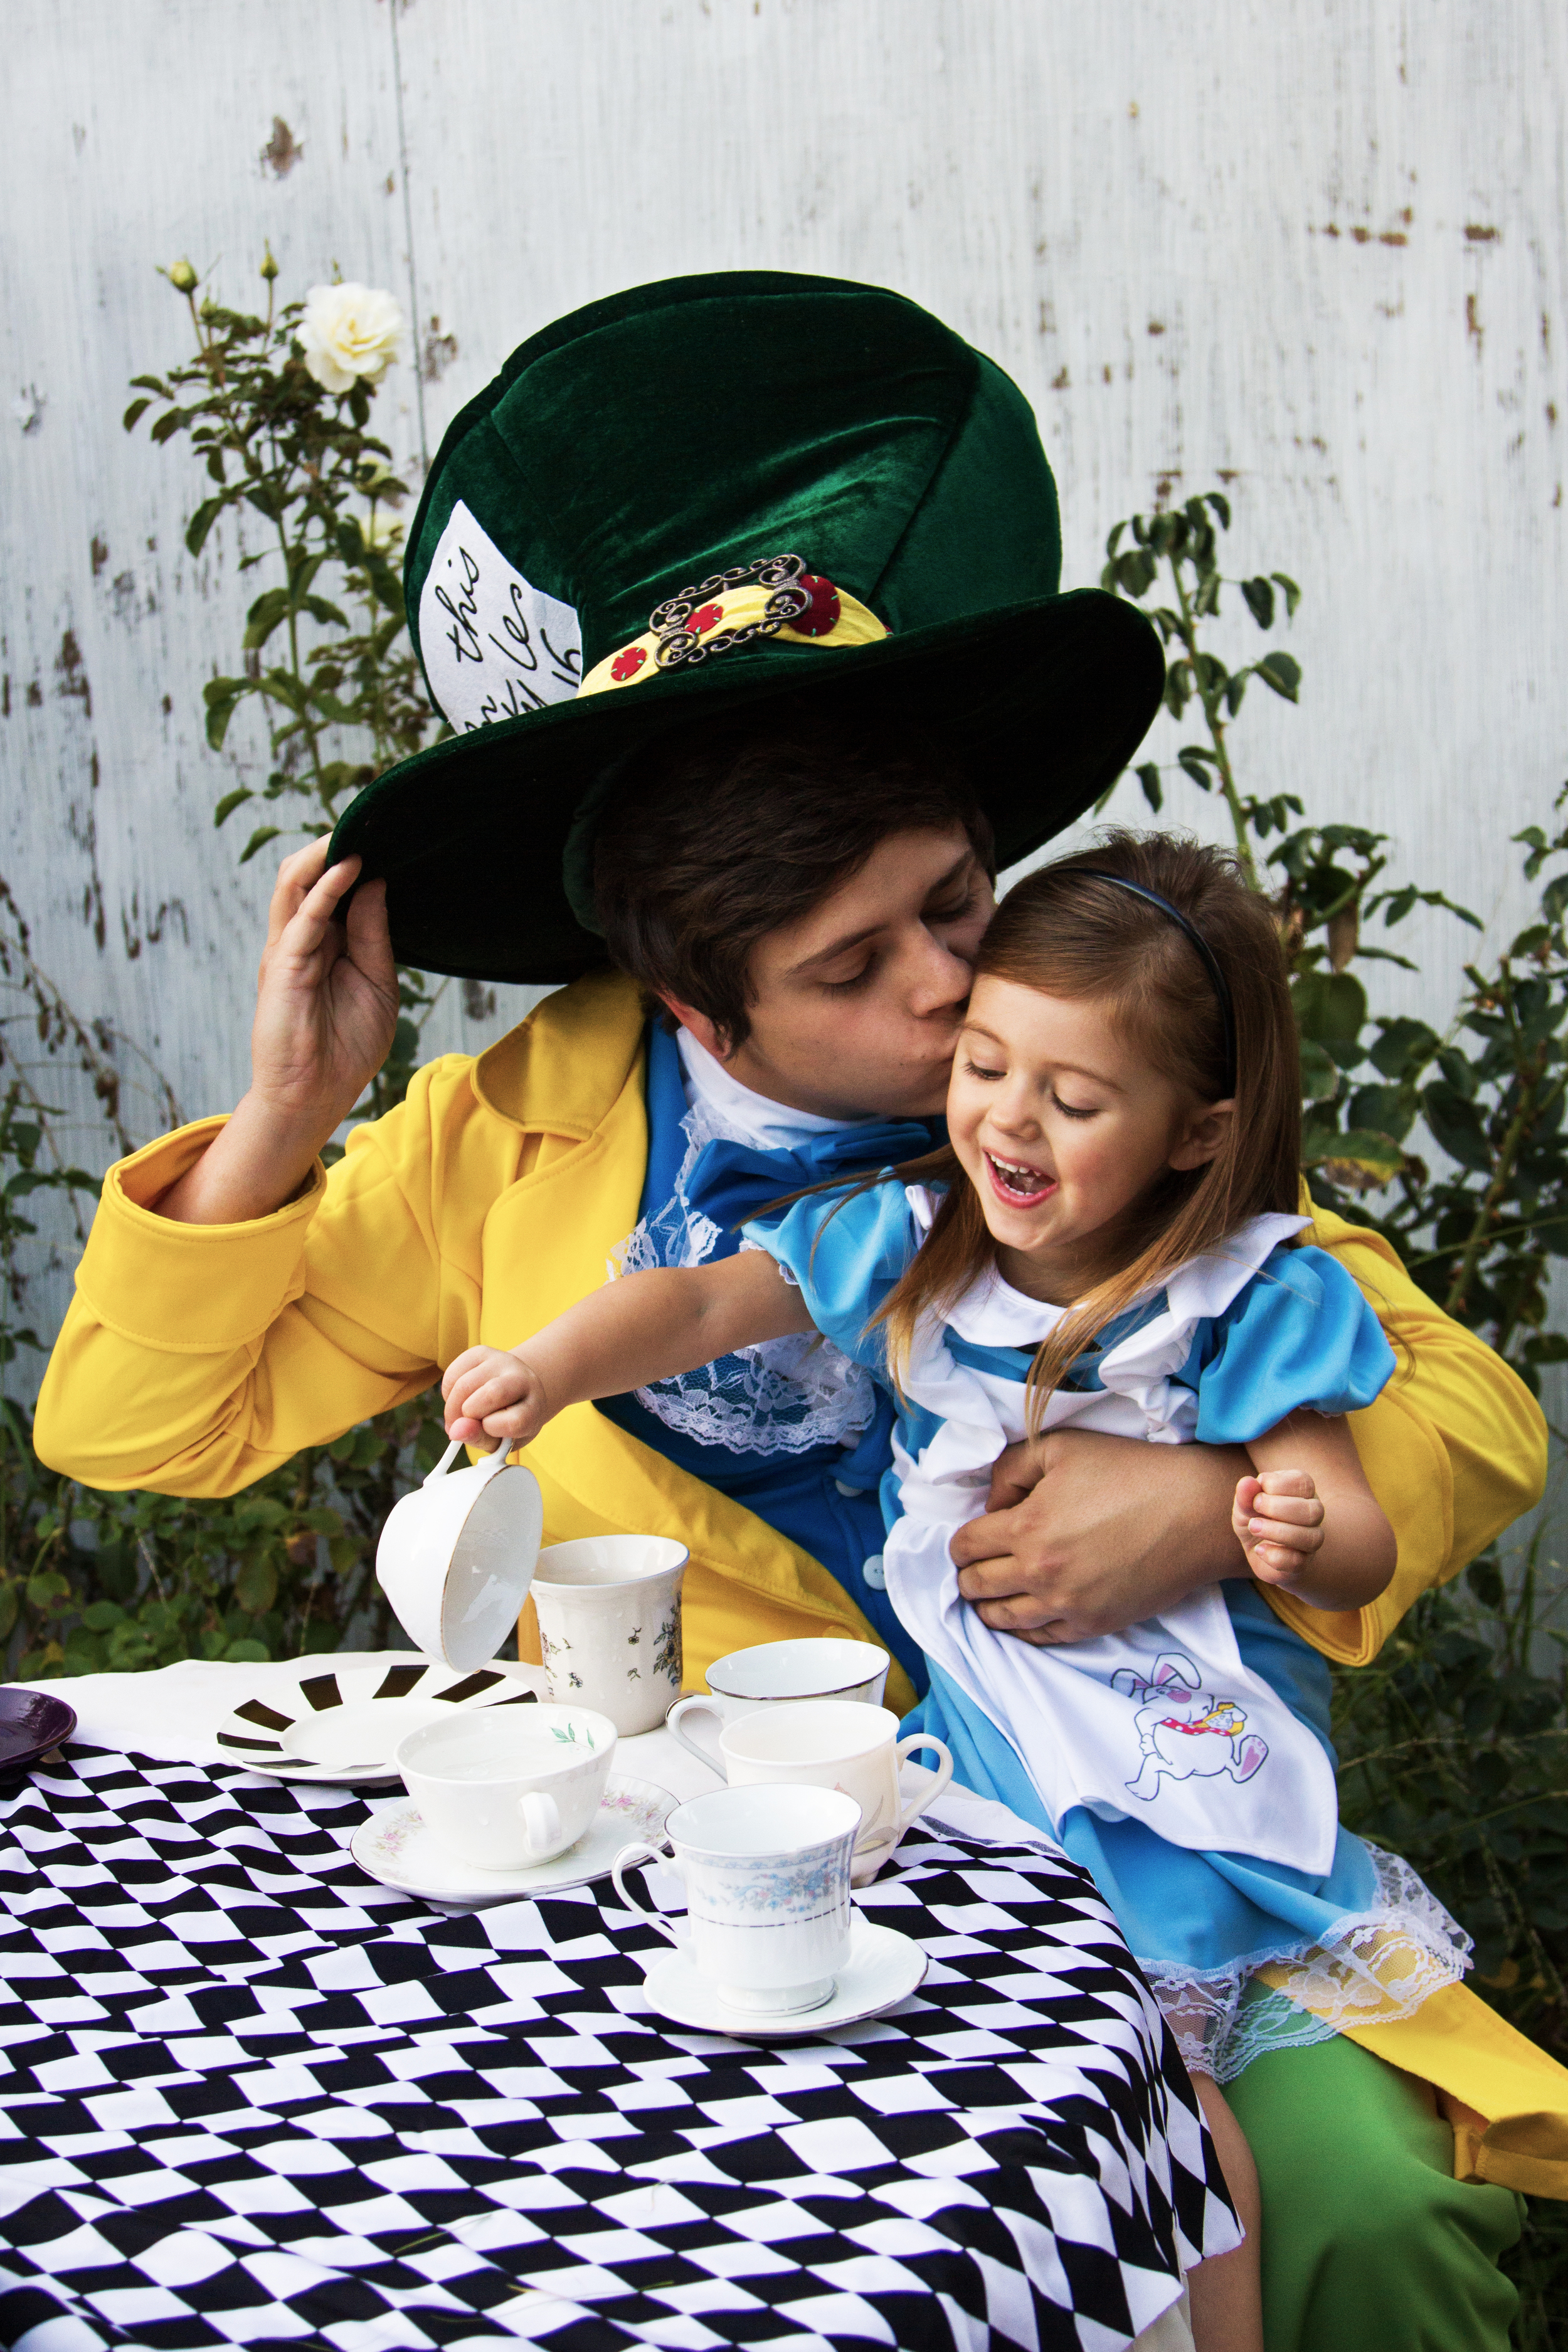 My brother Dustin and niece Lyric as The Mad Hatter and Alice